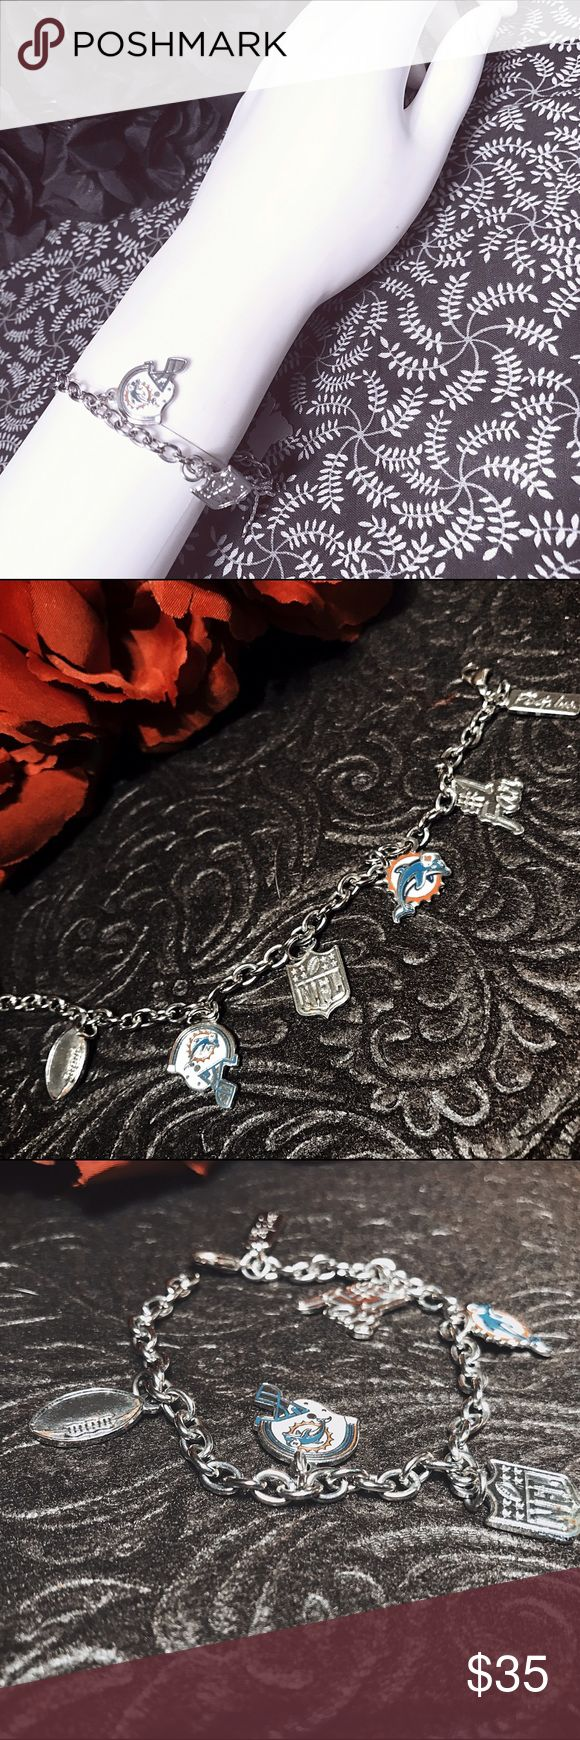 🛍 Silver plated Miami Dolphins dangle bracelet Super cute bracelet give to me years ago as a present. Put it away, and forgot about it, it's never been worn. It's very cute, small/dainty and very light. Will fit most wrists. #miamidolphins #dolphins #nfl #football #dolphan #footballsunday #miAmi #tannehill #wake #suh #danmarino #fins #silver #jewelry #bracelet #dangle Jewelry Bracelets